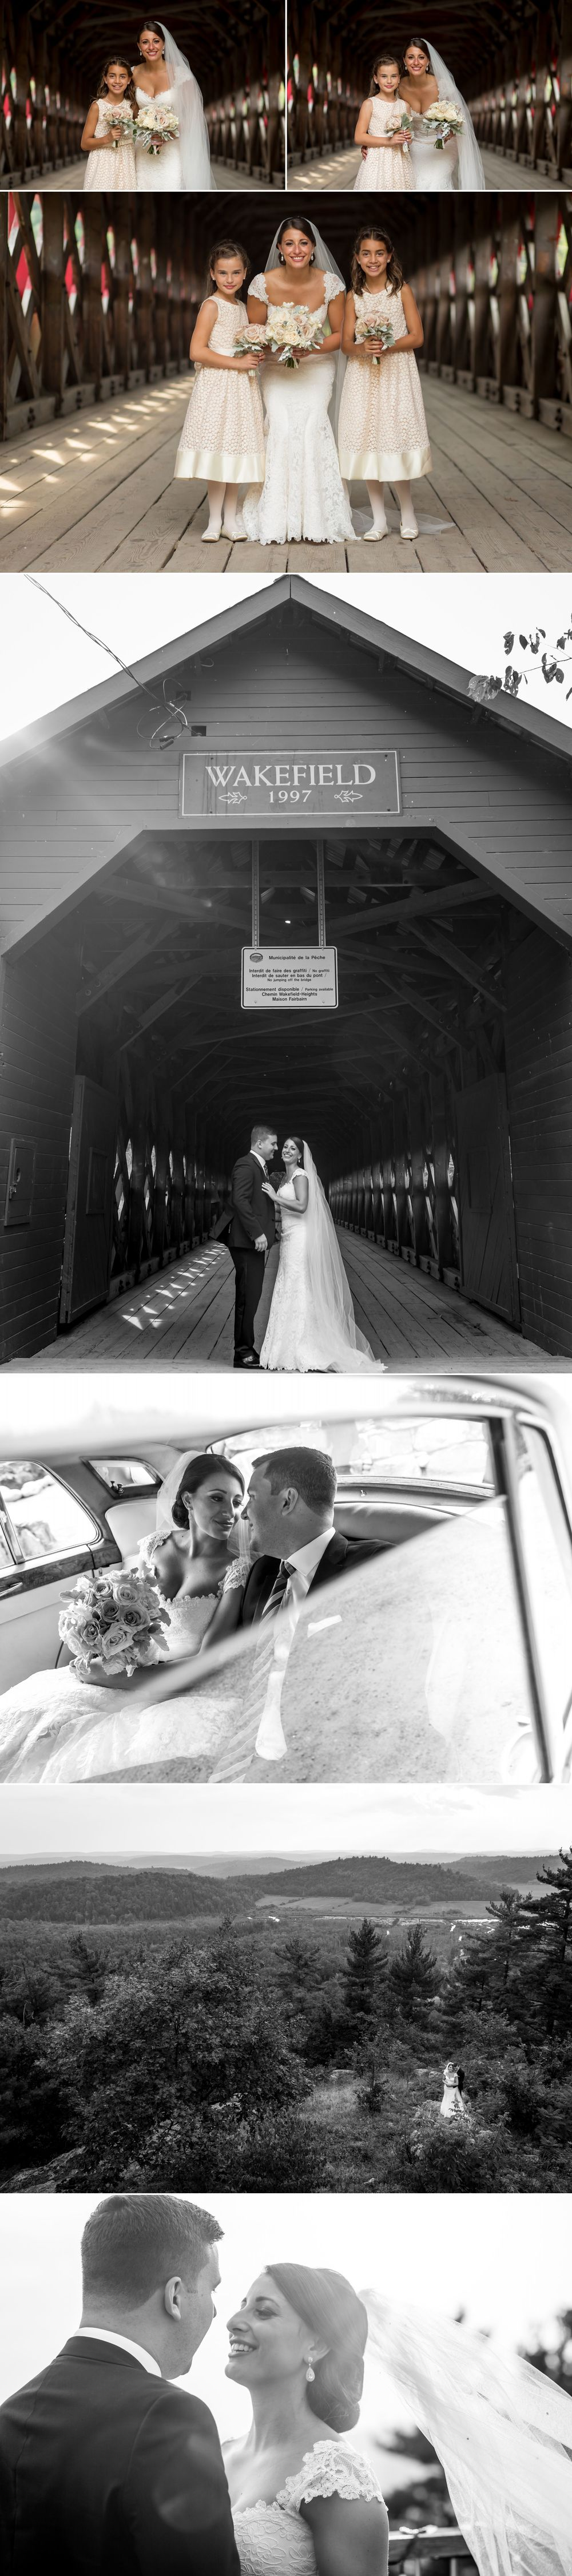 Wedding photos at the covered bridge in wakefield quebec